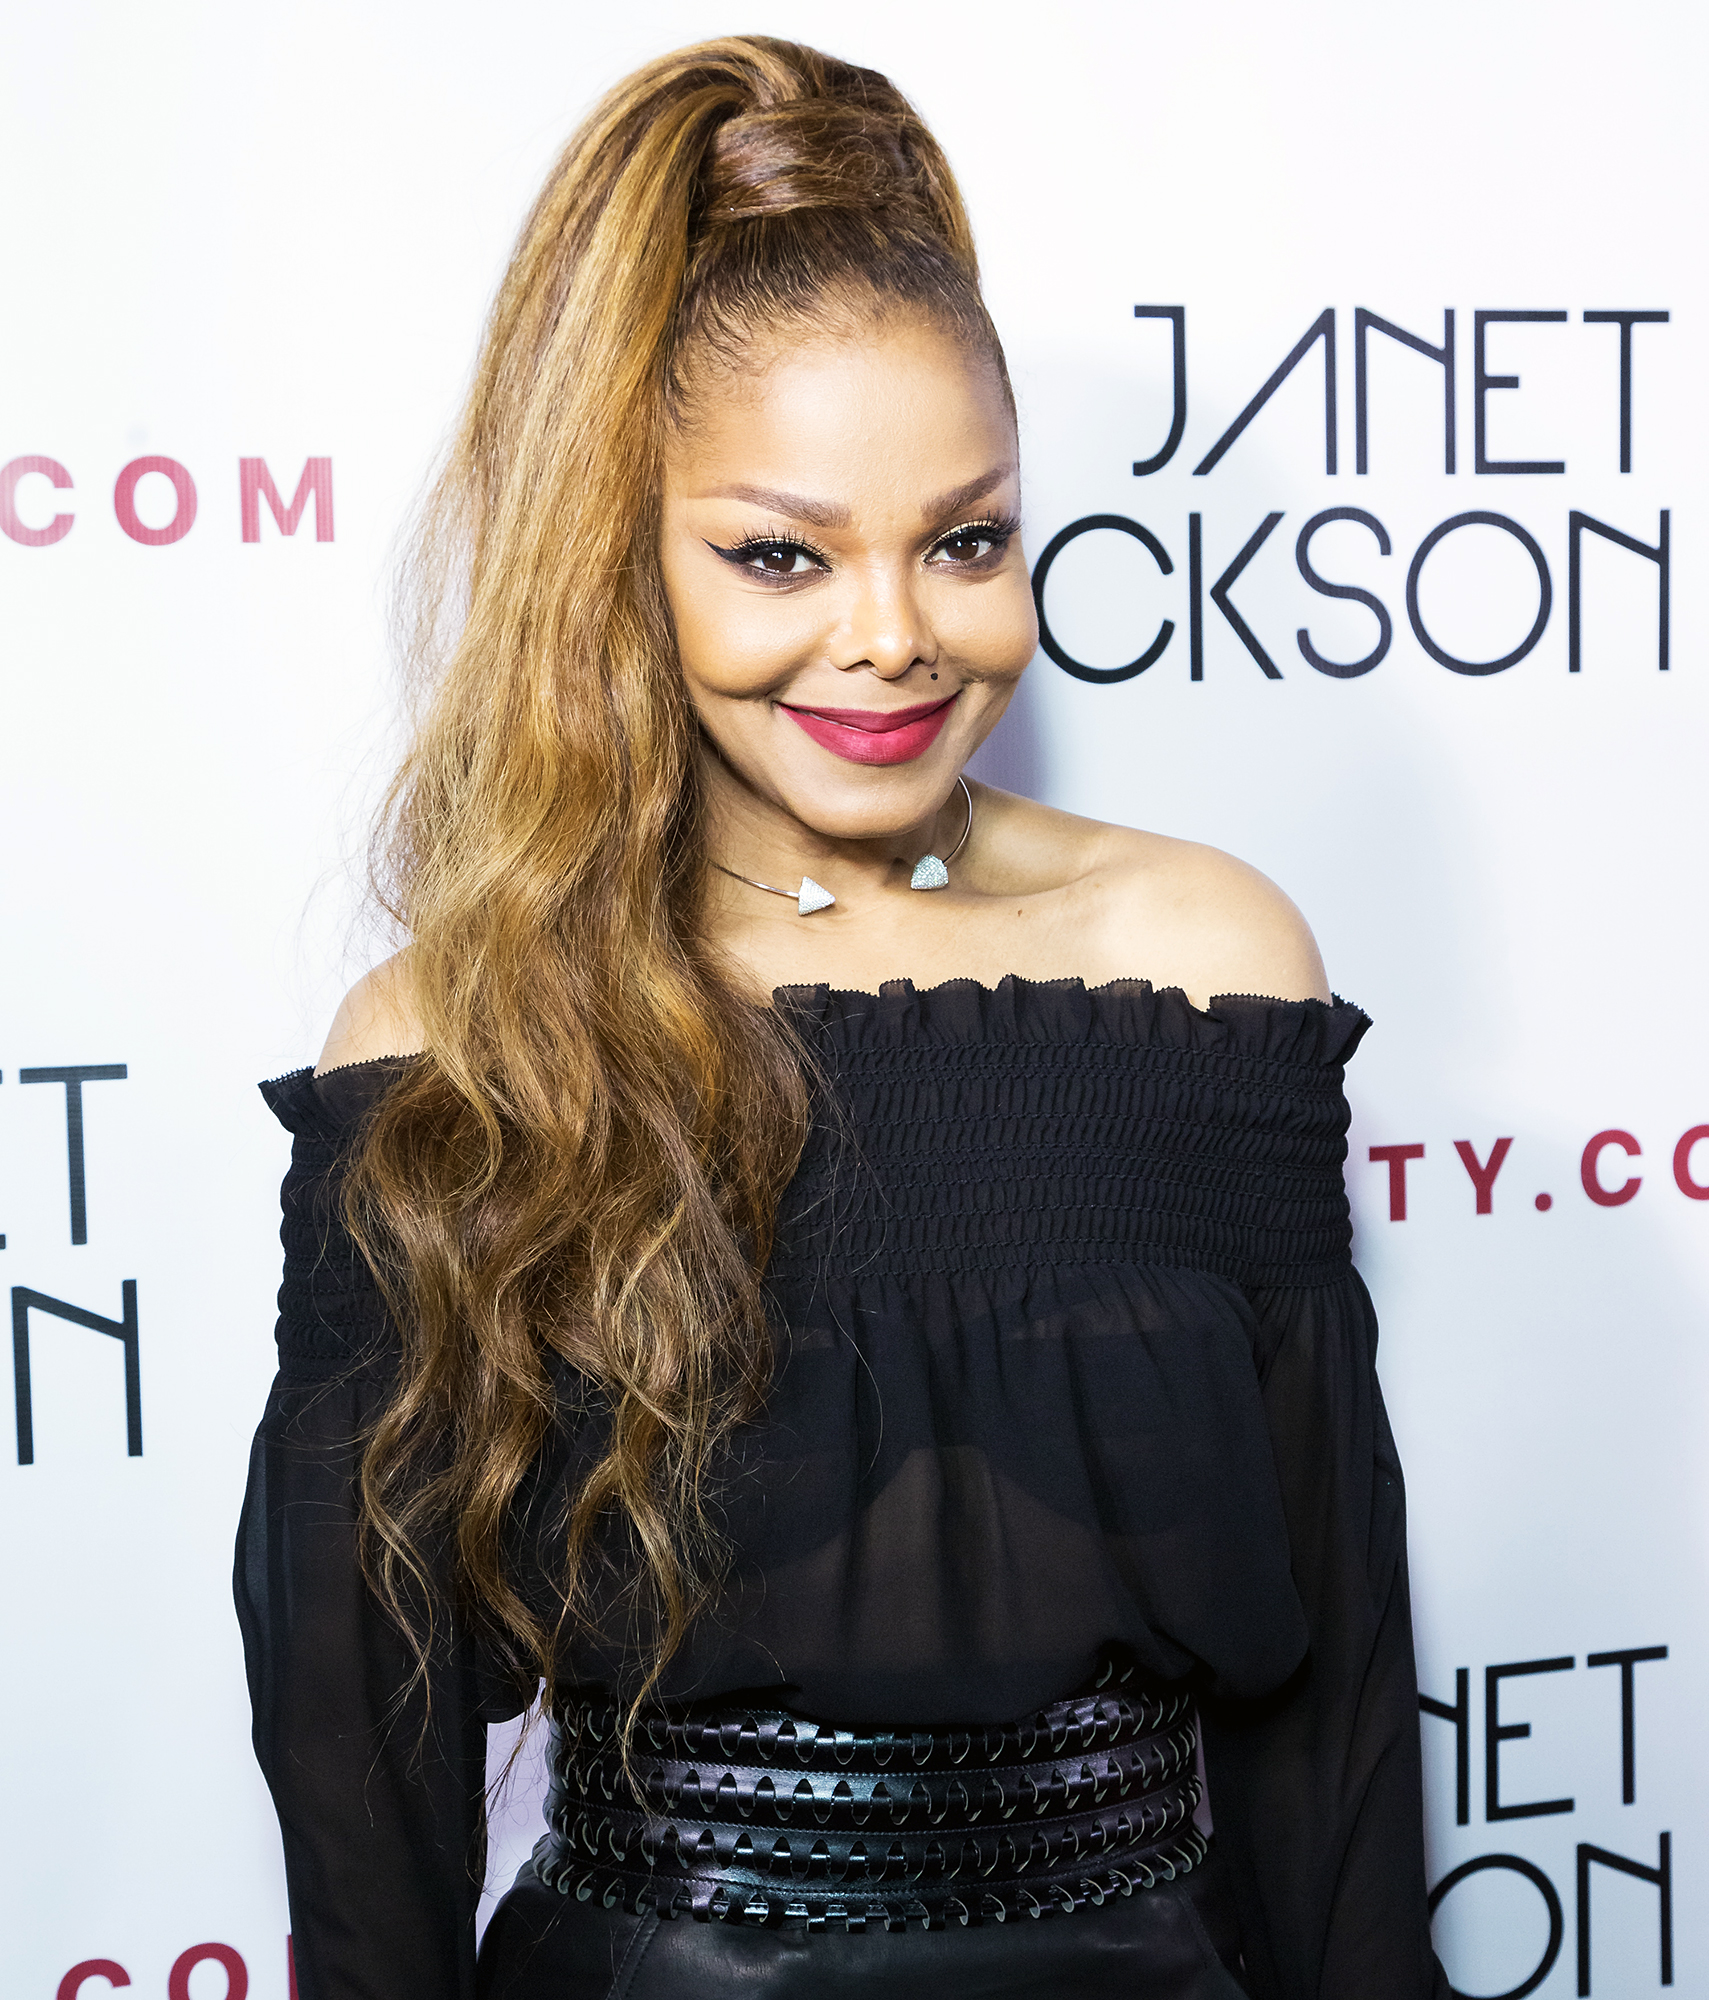 Janet Jackson calls police to check on son amid nasty custody battle